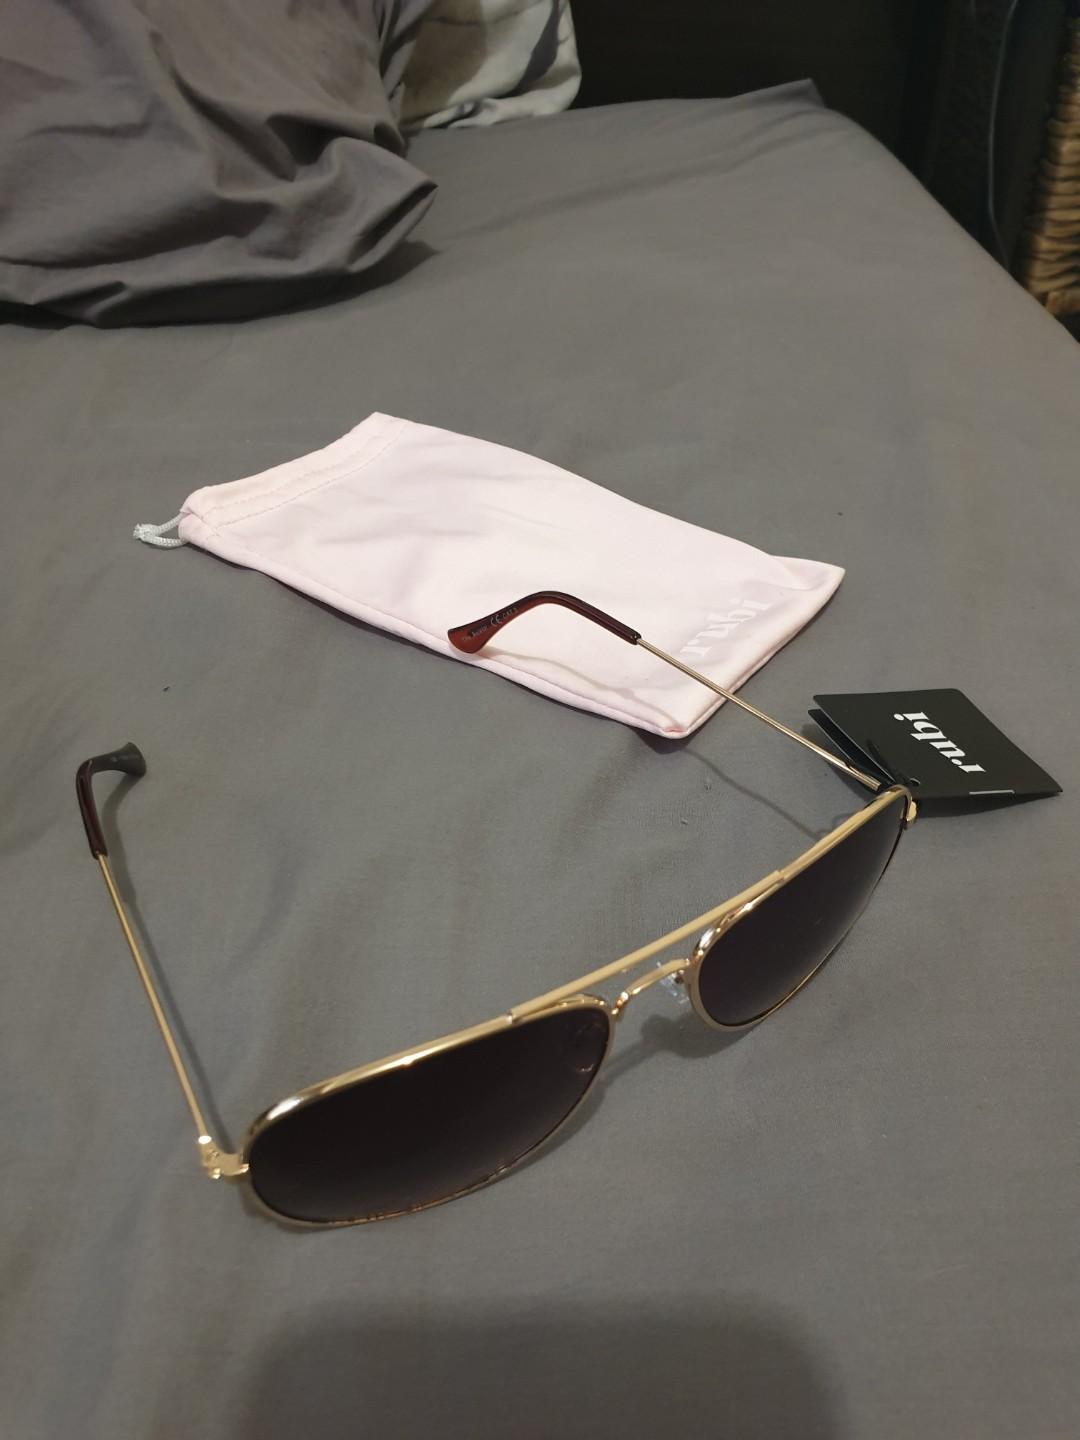 Gold rubi aviator sunglasses, never worn, comes with a protective case